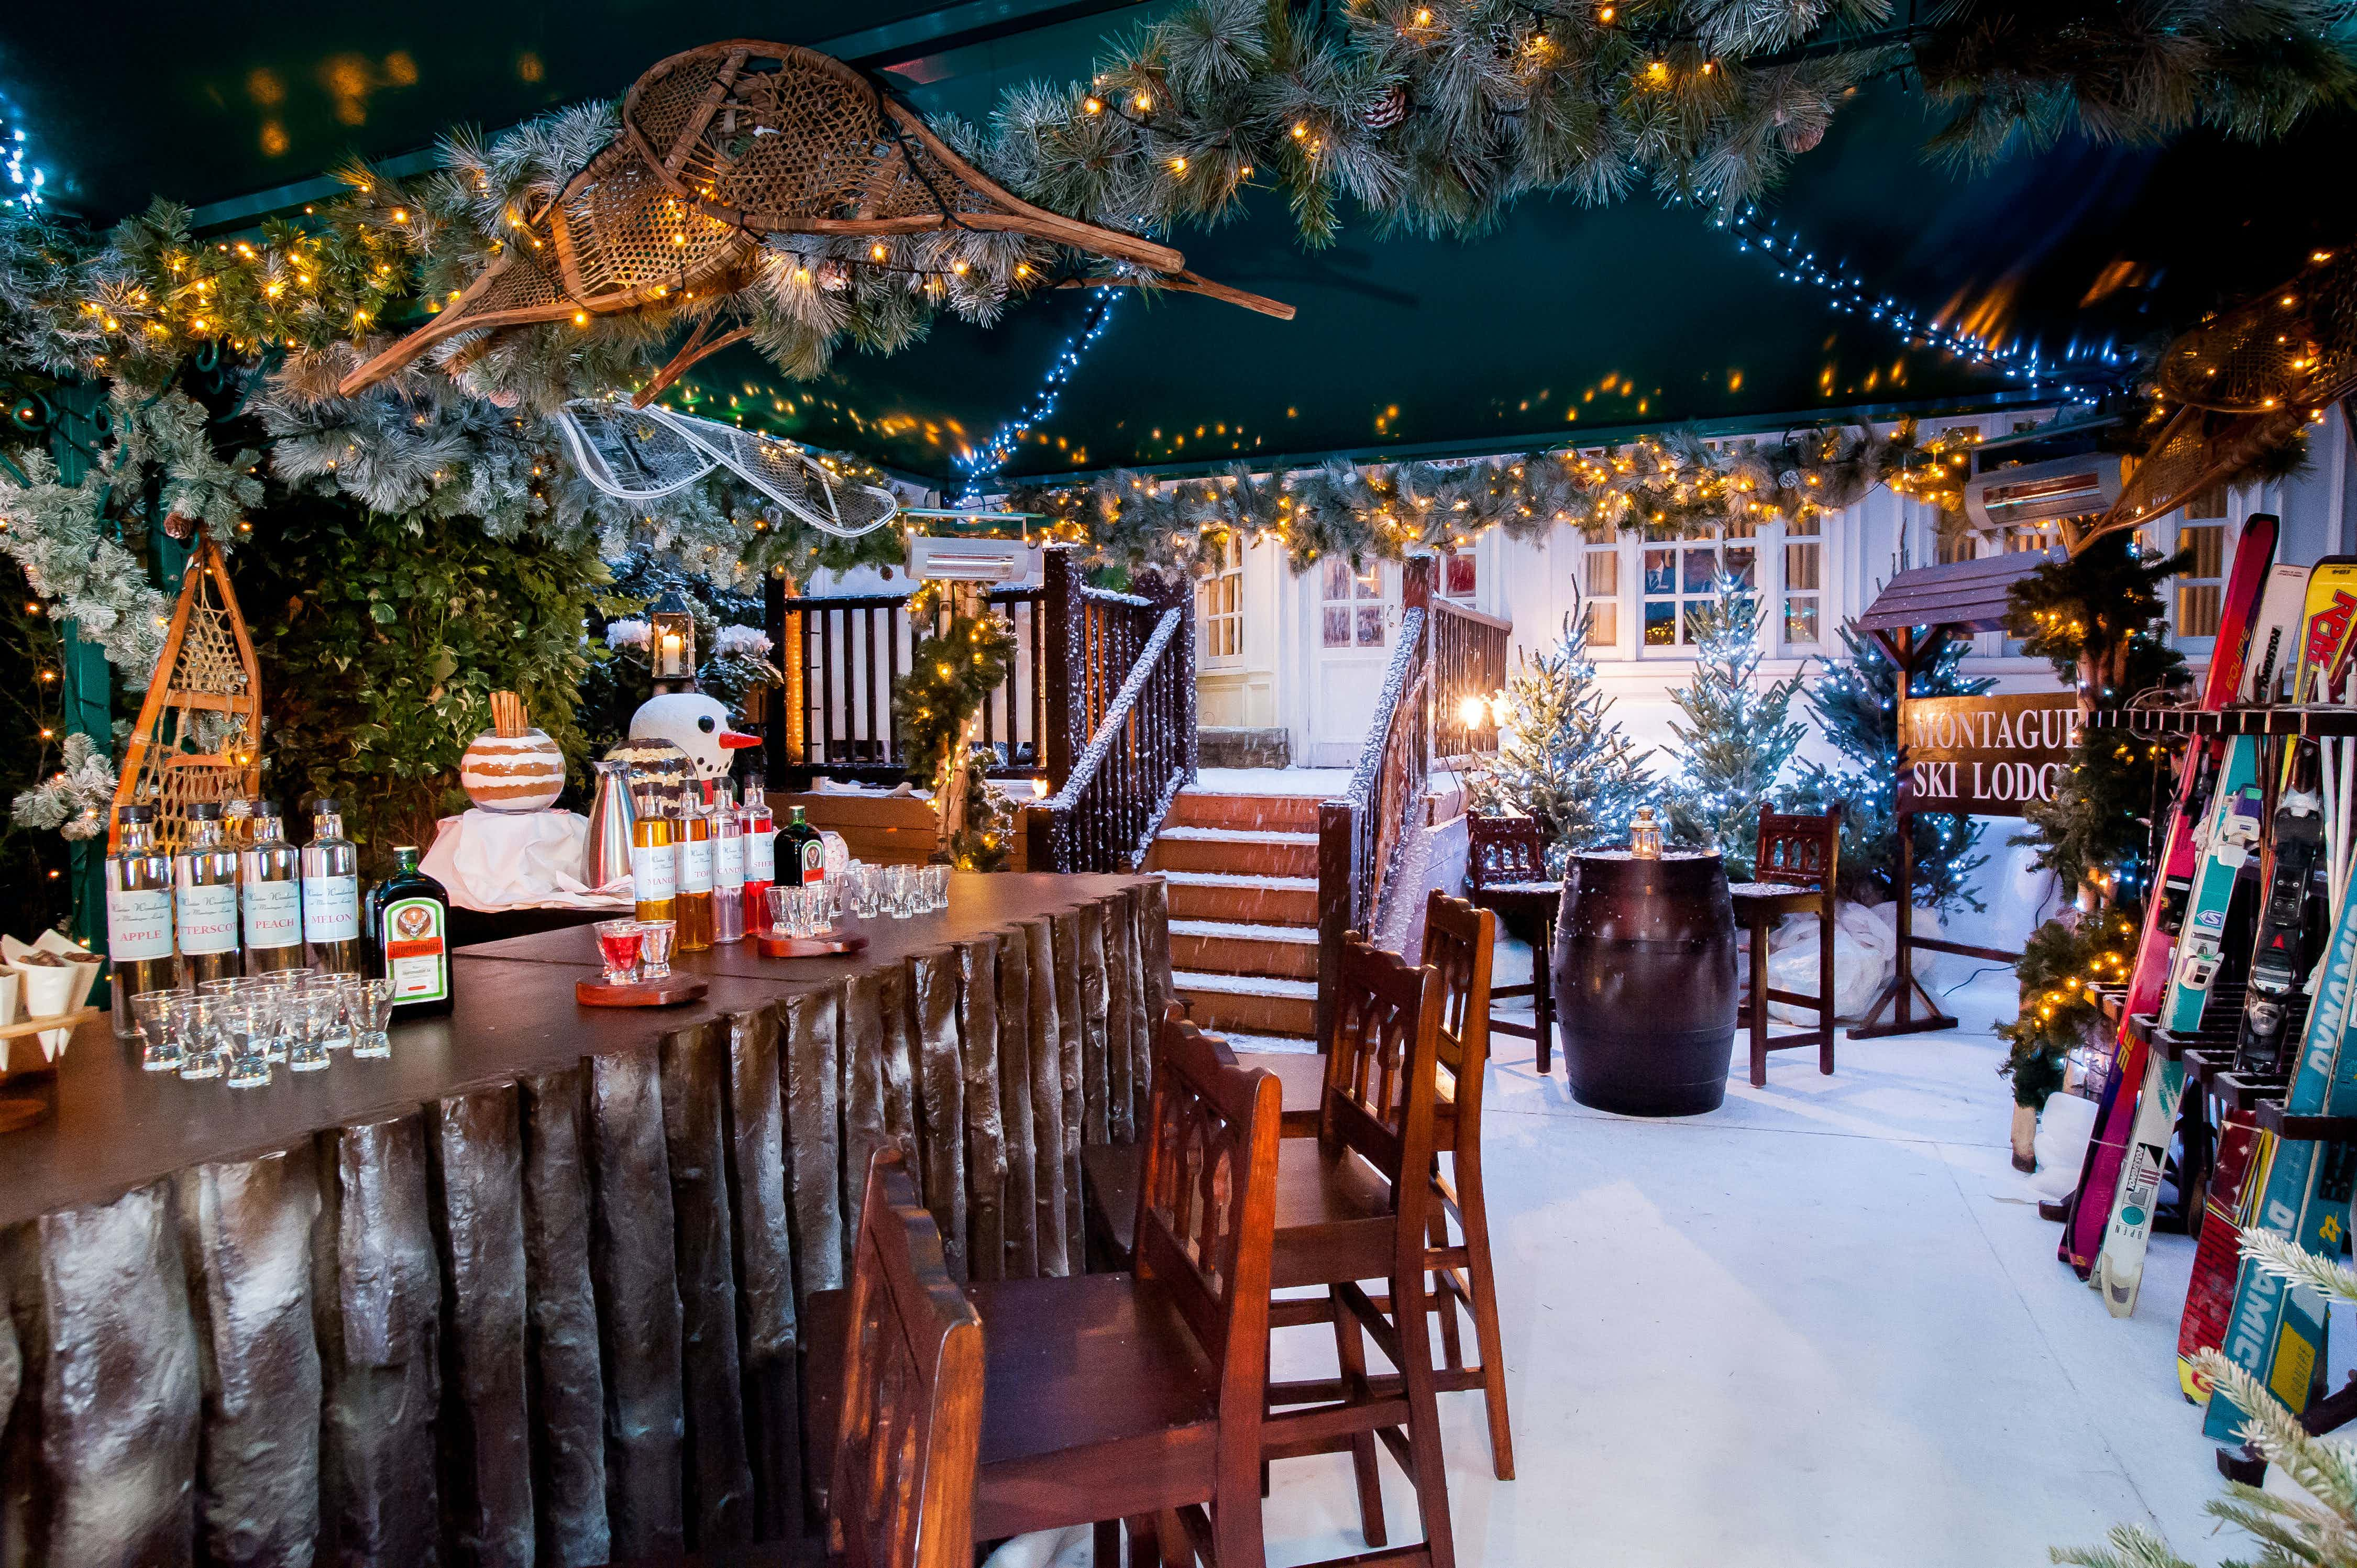 The Ski Lodge, The Montague on the Gardens